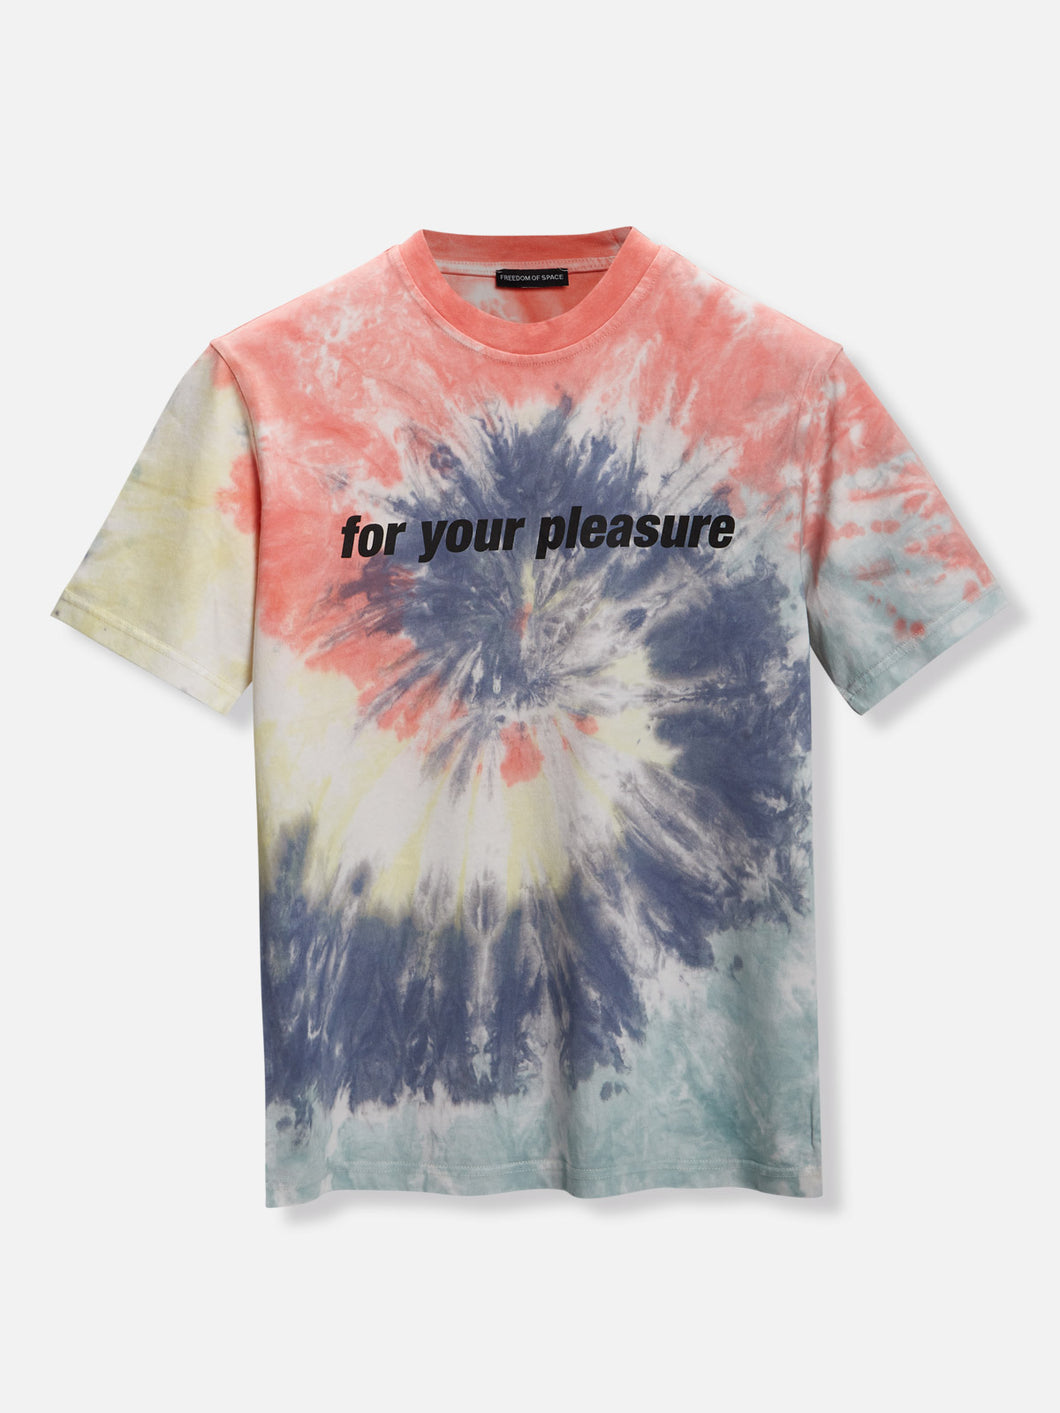 For Your Pleasure Tie Dye T-Shirt